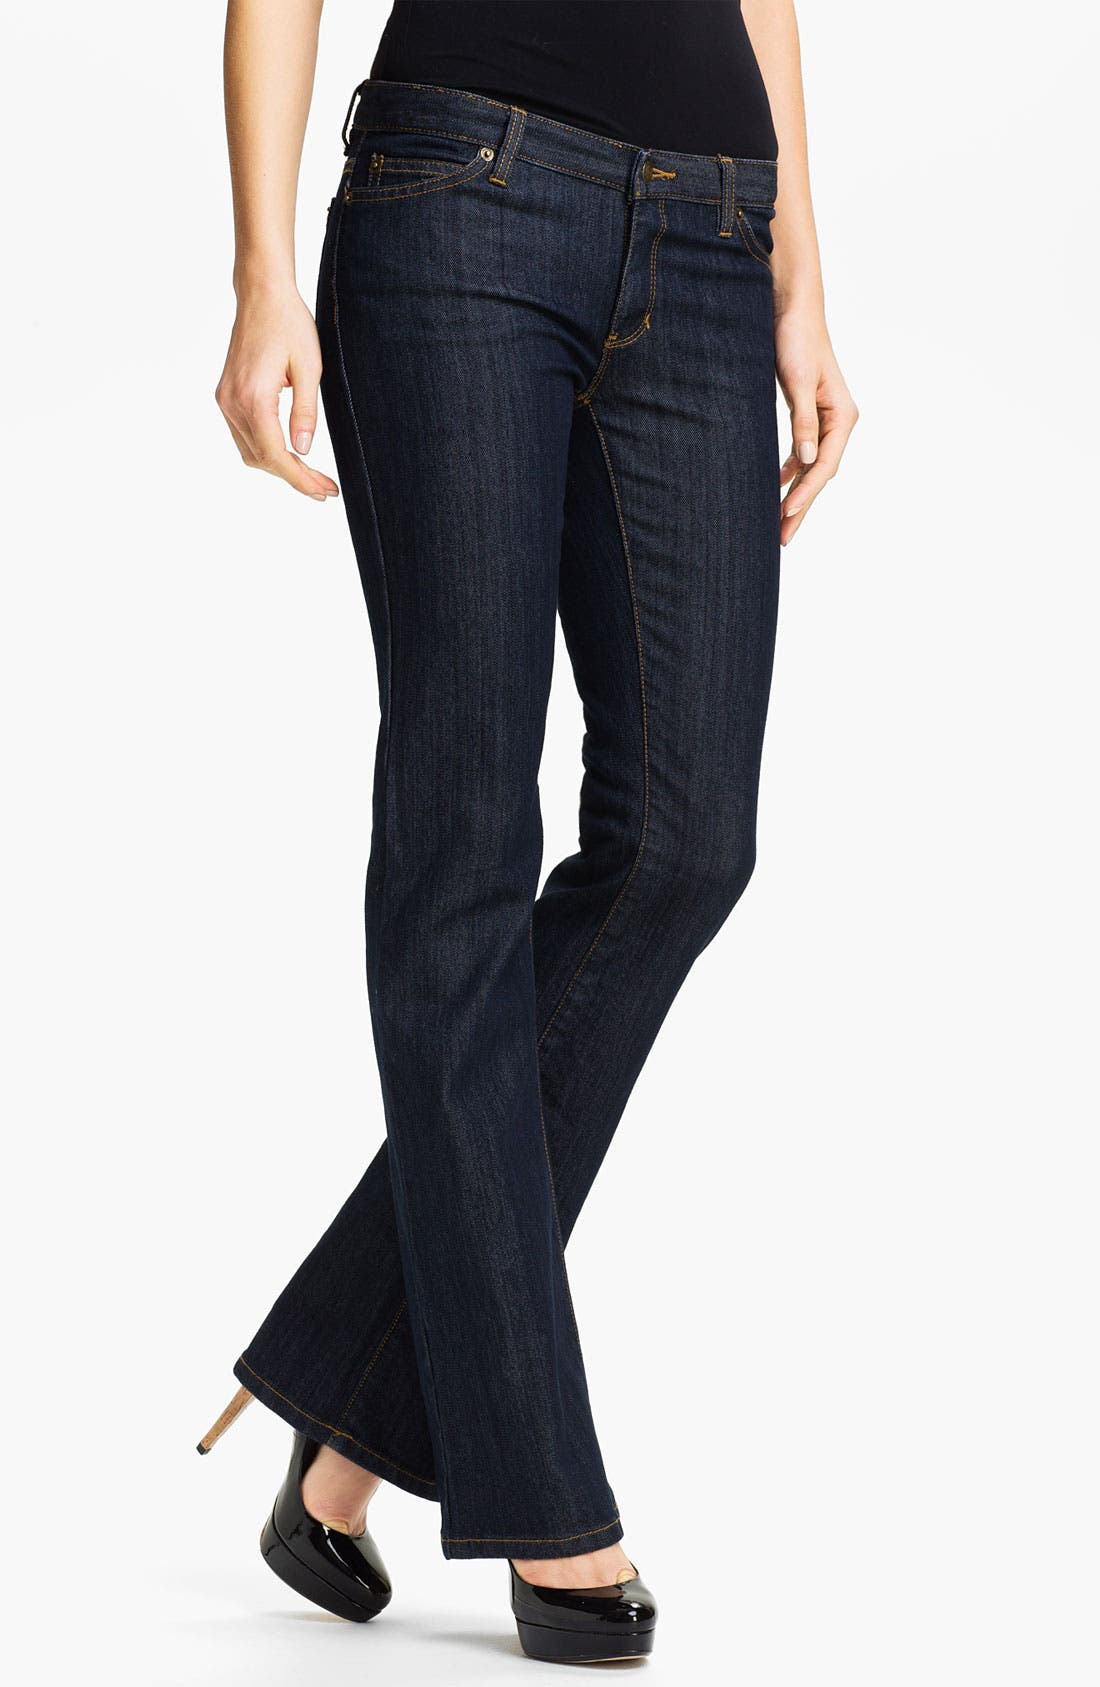 Alternate Image 1 Selected - MICHAEL Michael Kors 'Sausalito' Bootcut Stretch Jeans